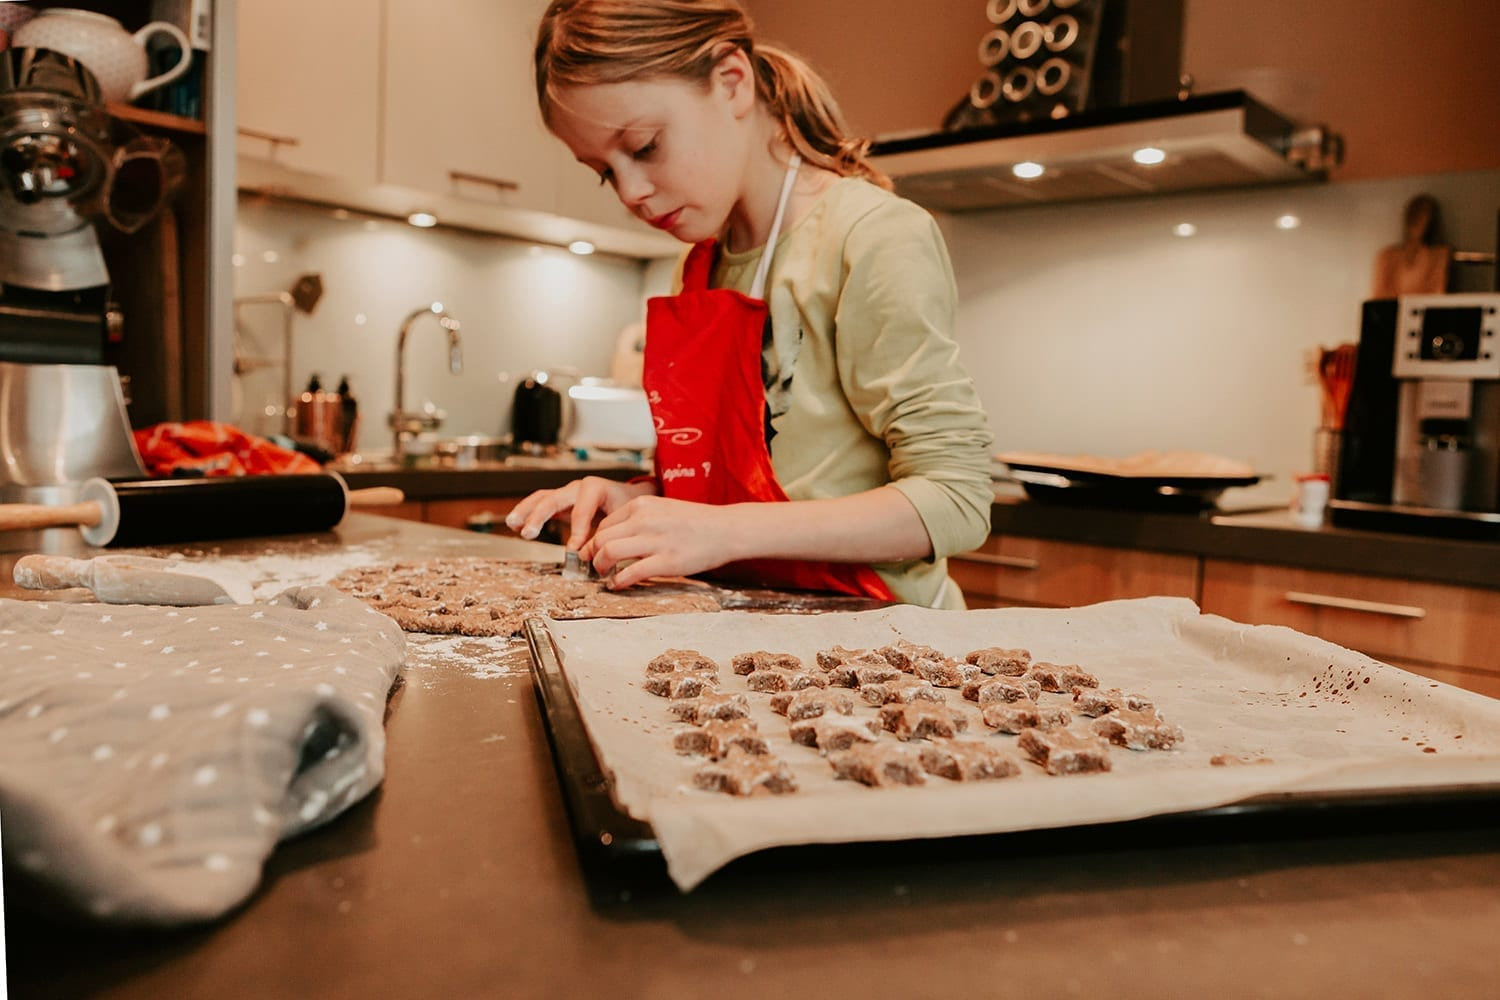 young girl with a red apron baking german cinnamon stars for Christmas